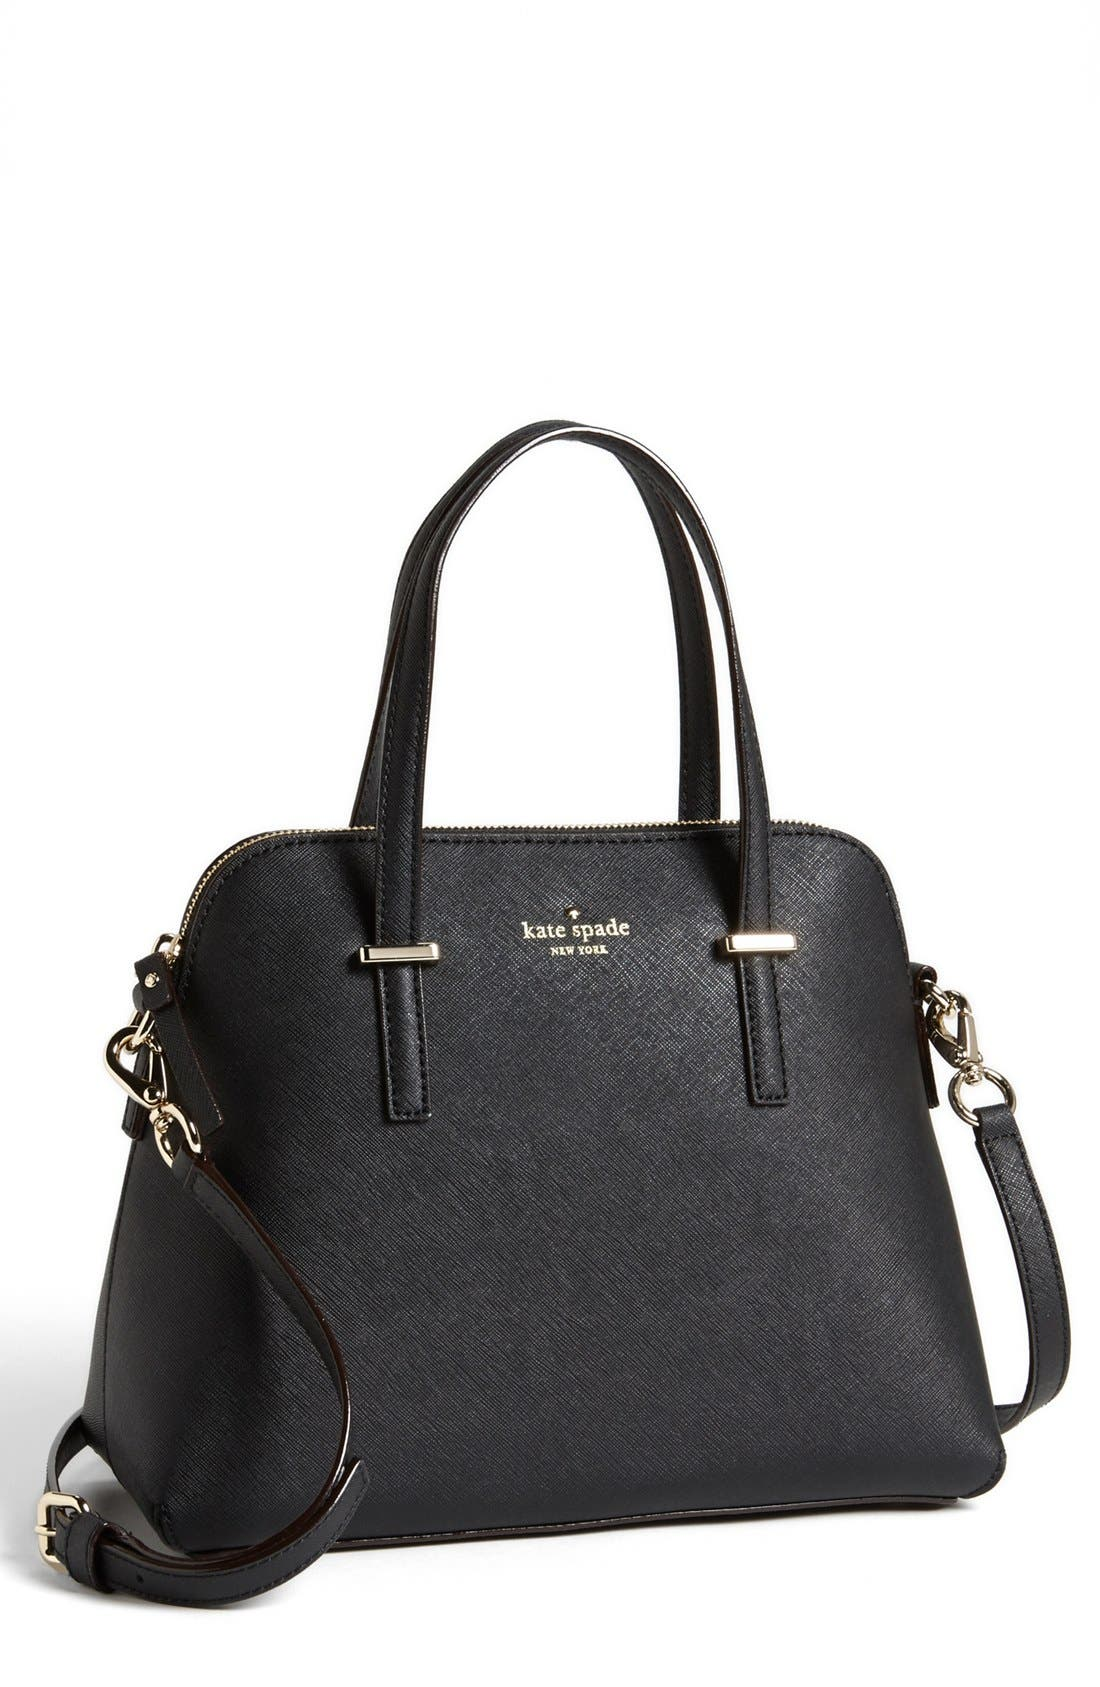 Alternate Image 1 Selected - kate spade new york 'cedar street - maise' leather satchel